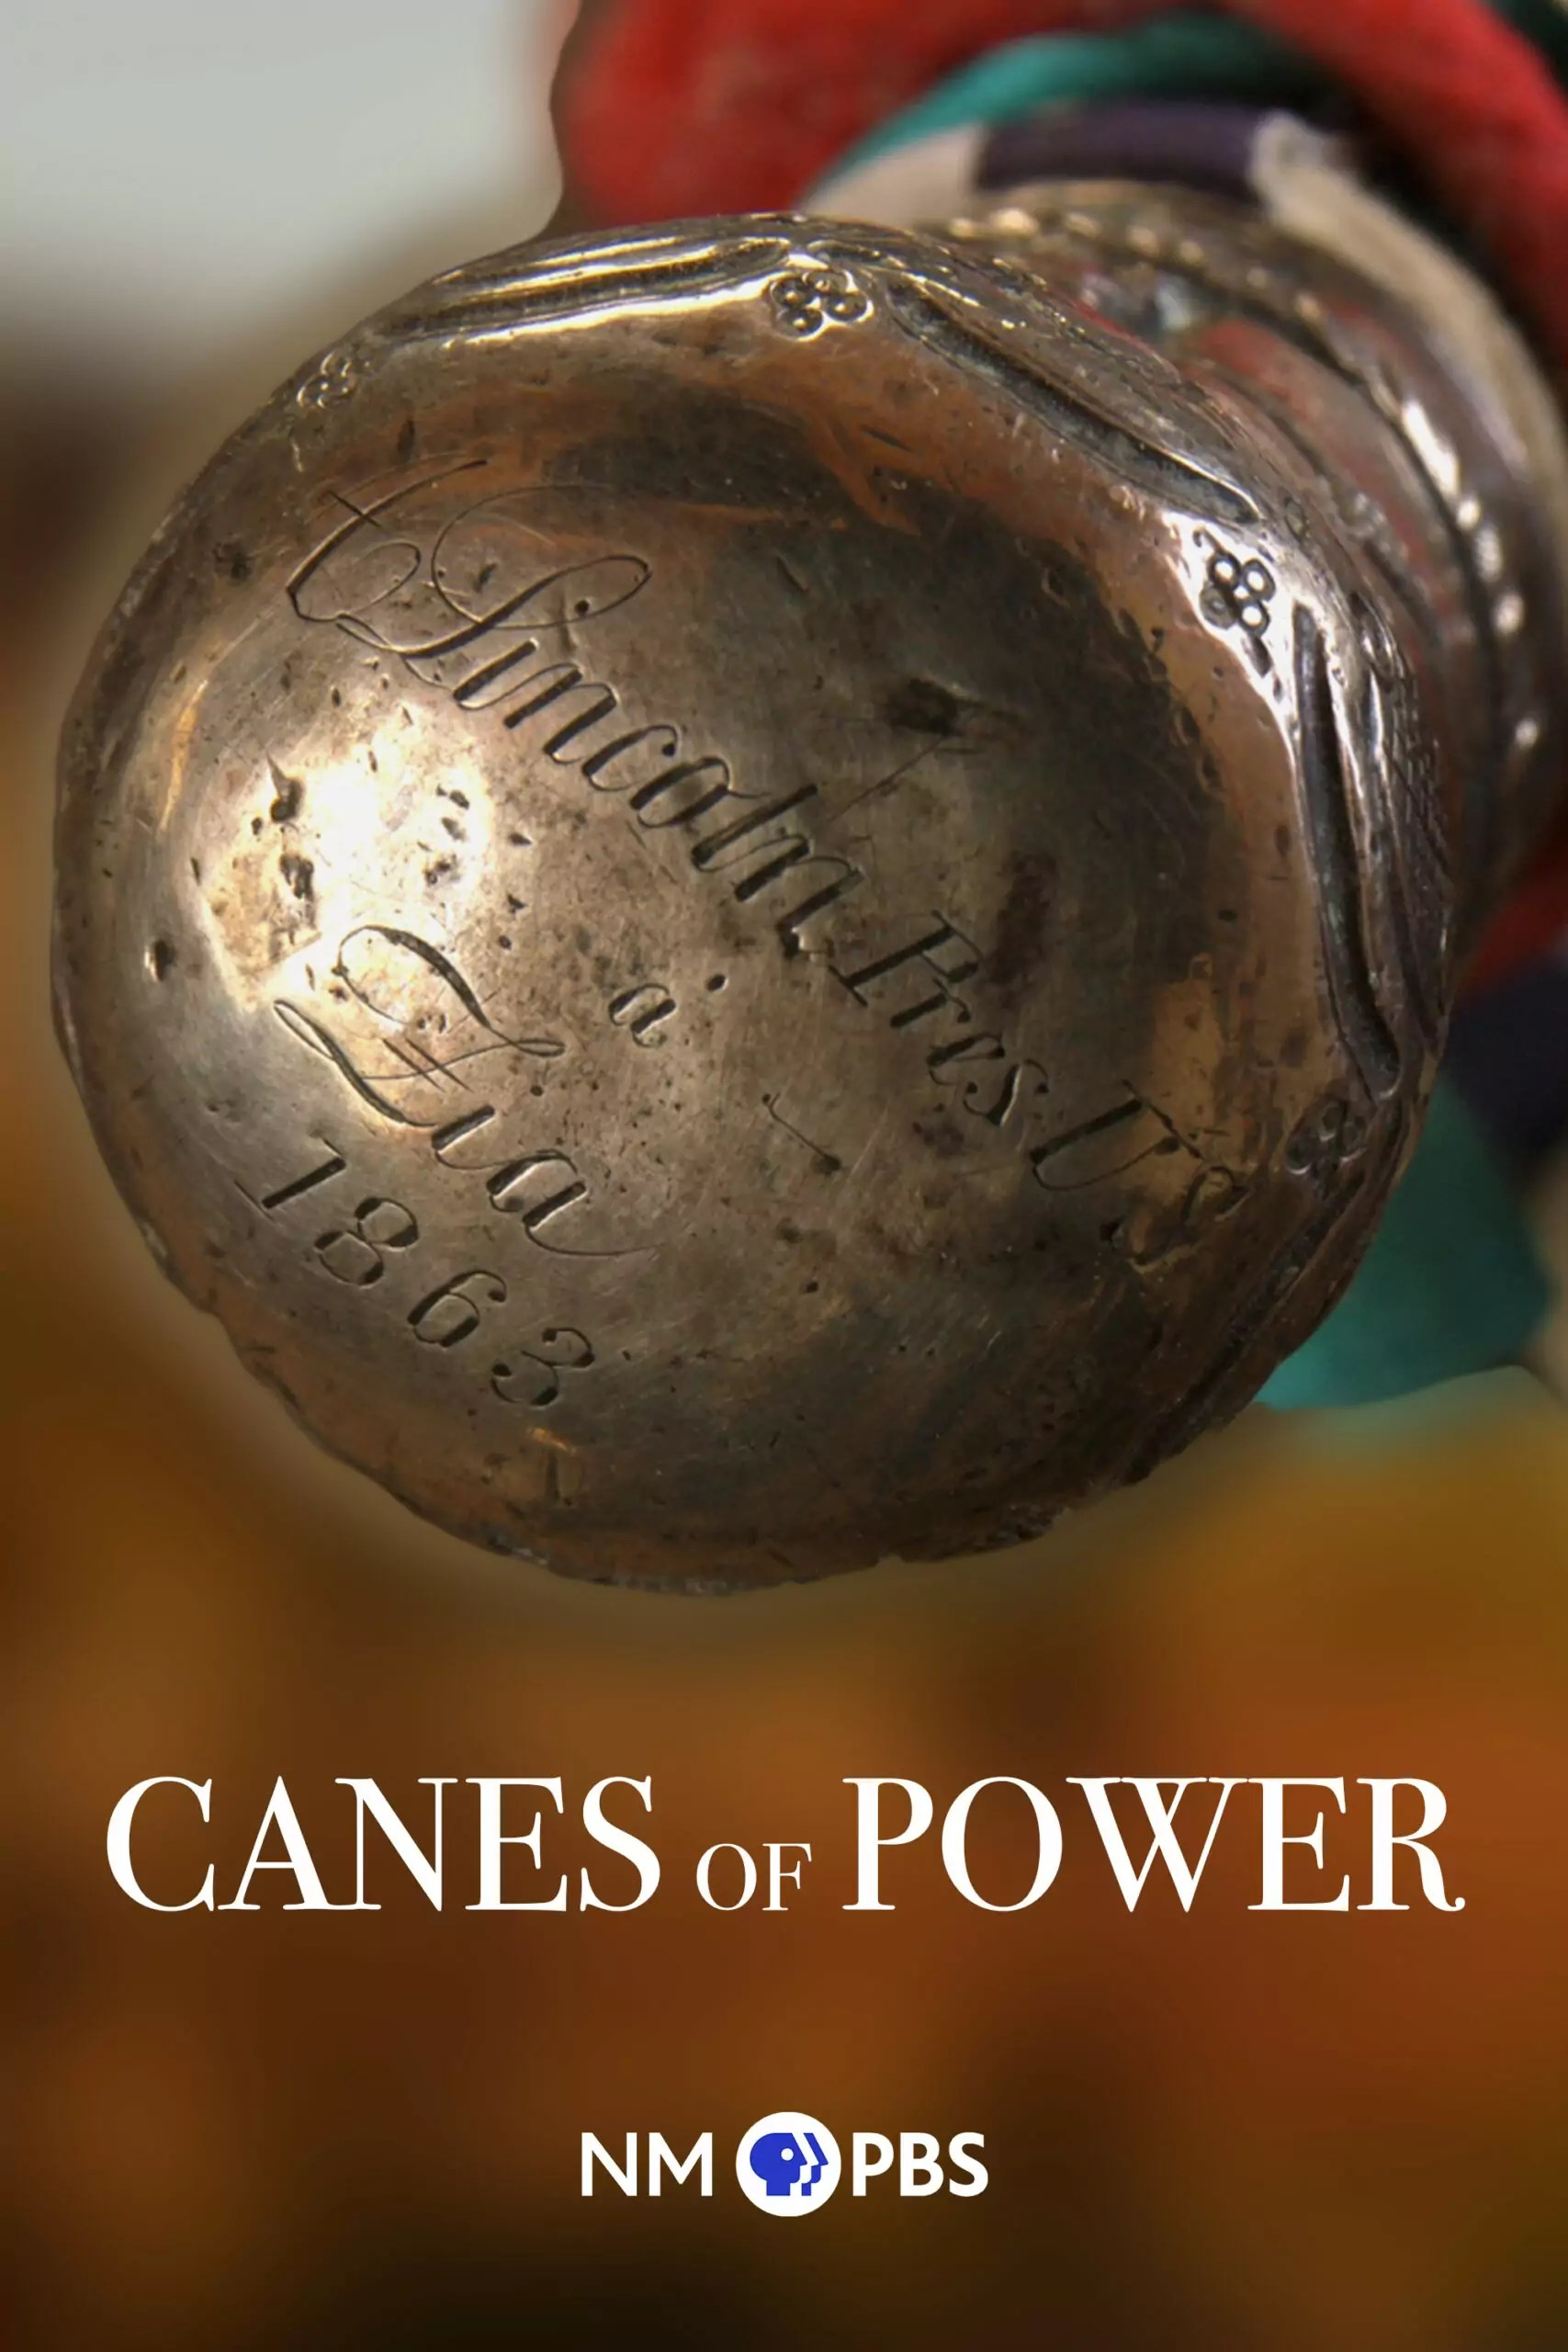 Canes of Power